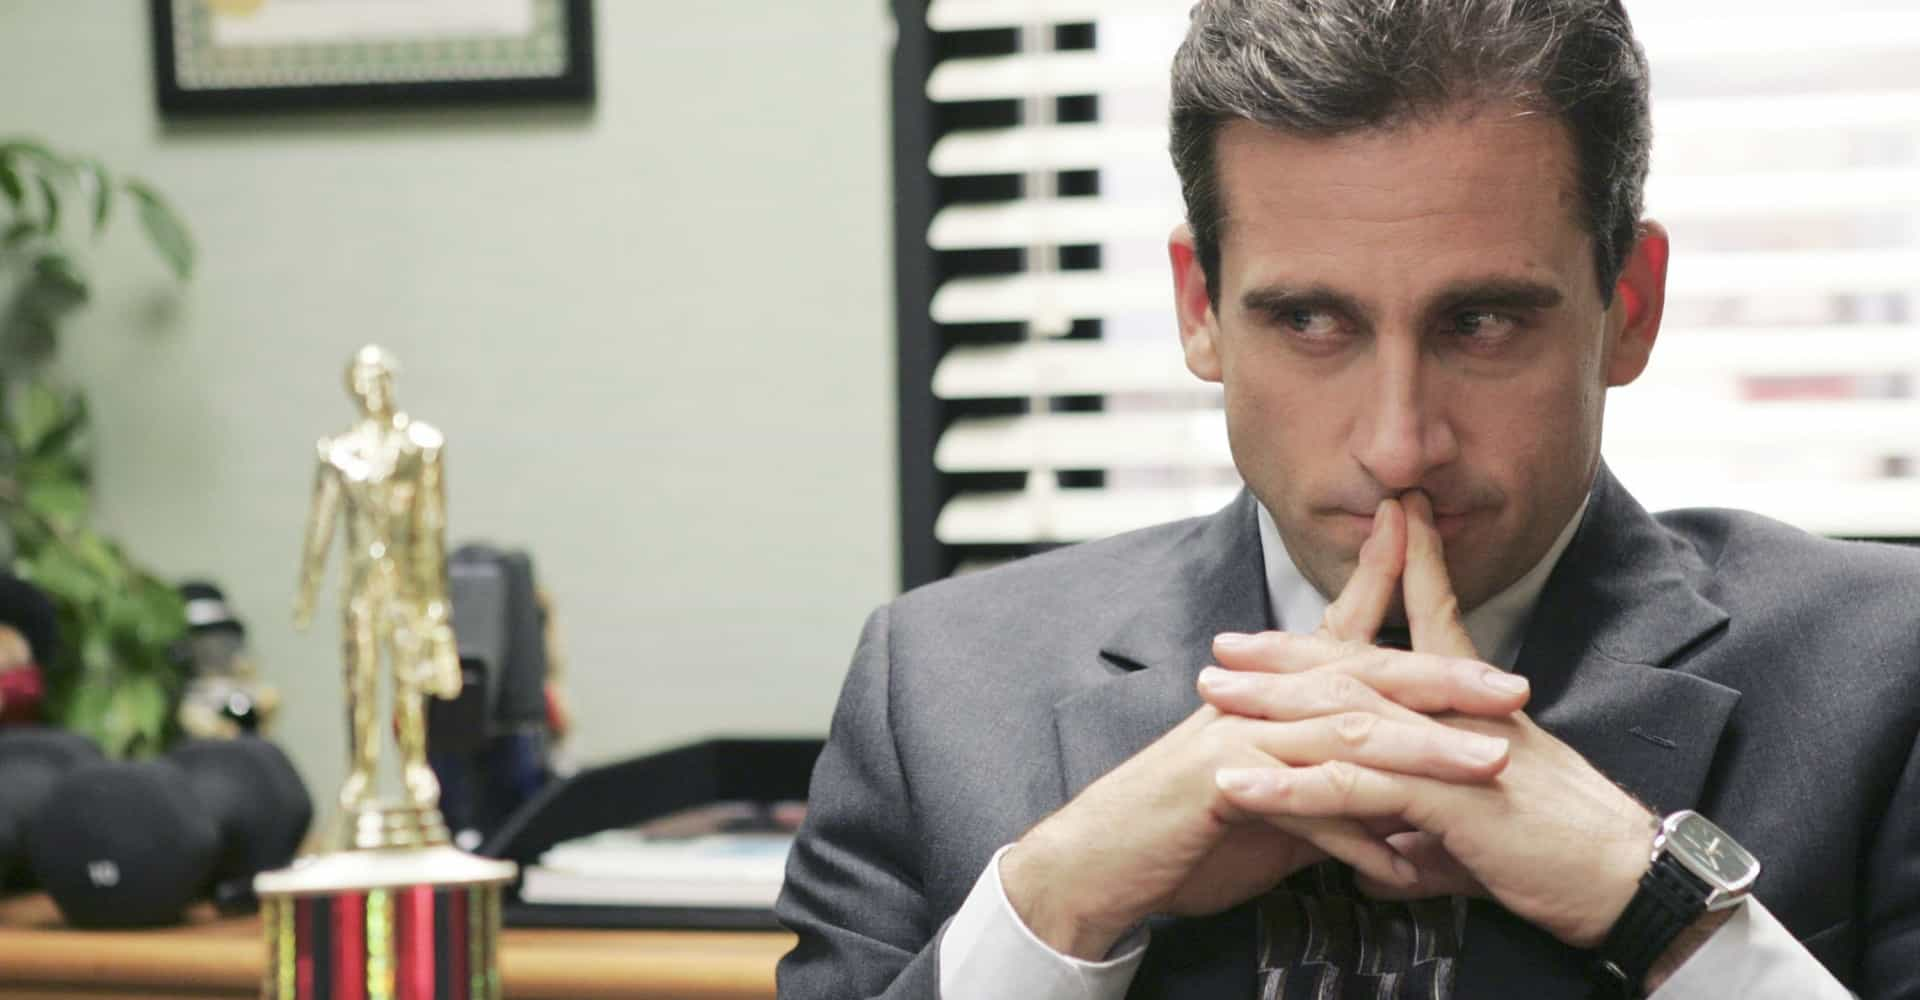 94 Michael Scott Quotes To Get You Through The Work Week